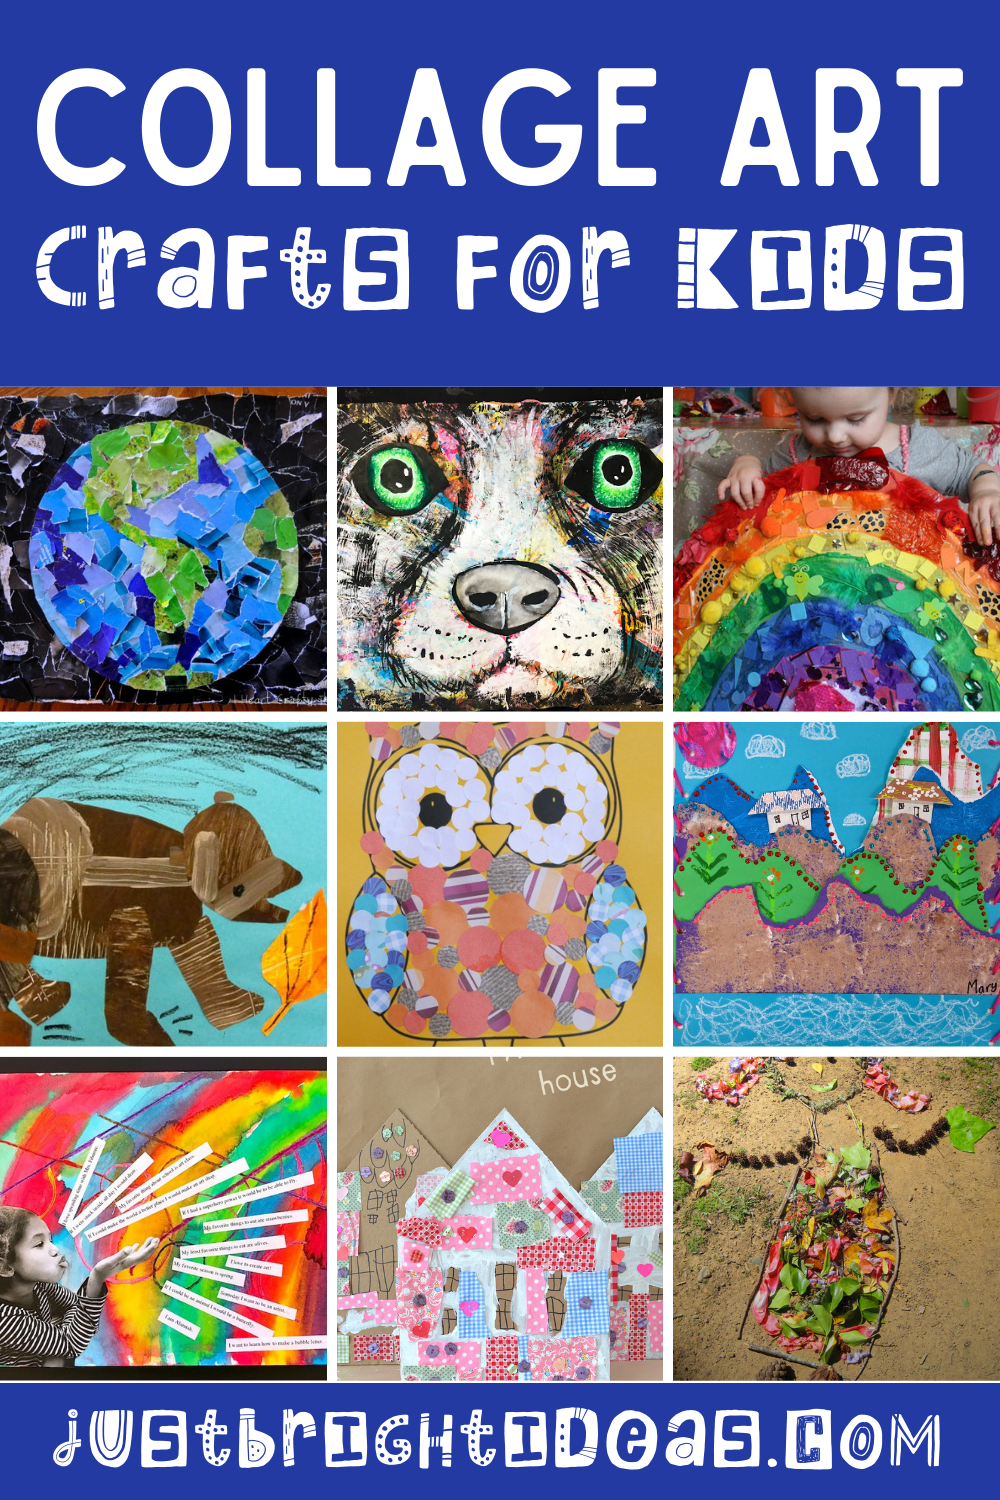 So many wonderful collage art ideas for kids of ages to enjoy at home!